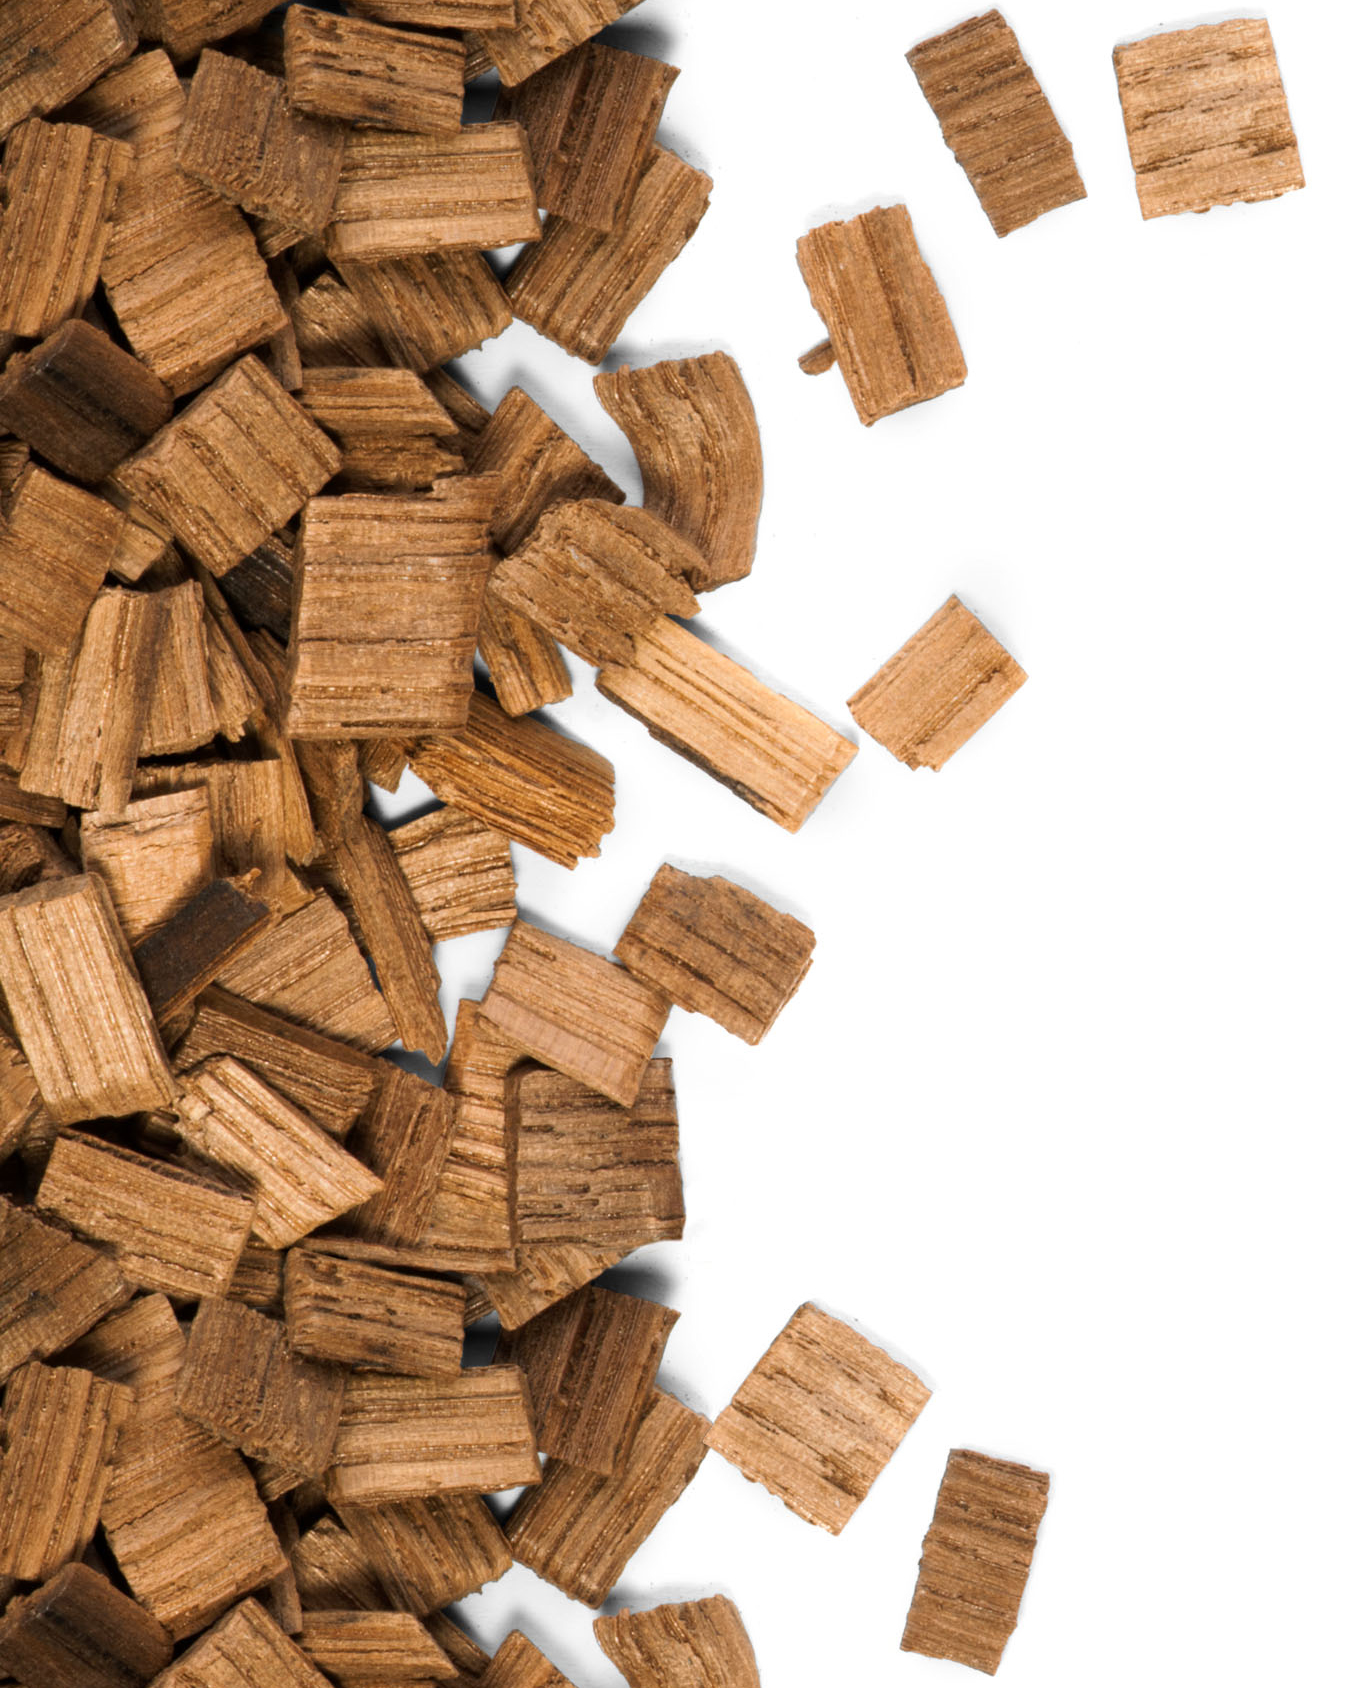 Wood Chip Guide